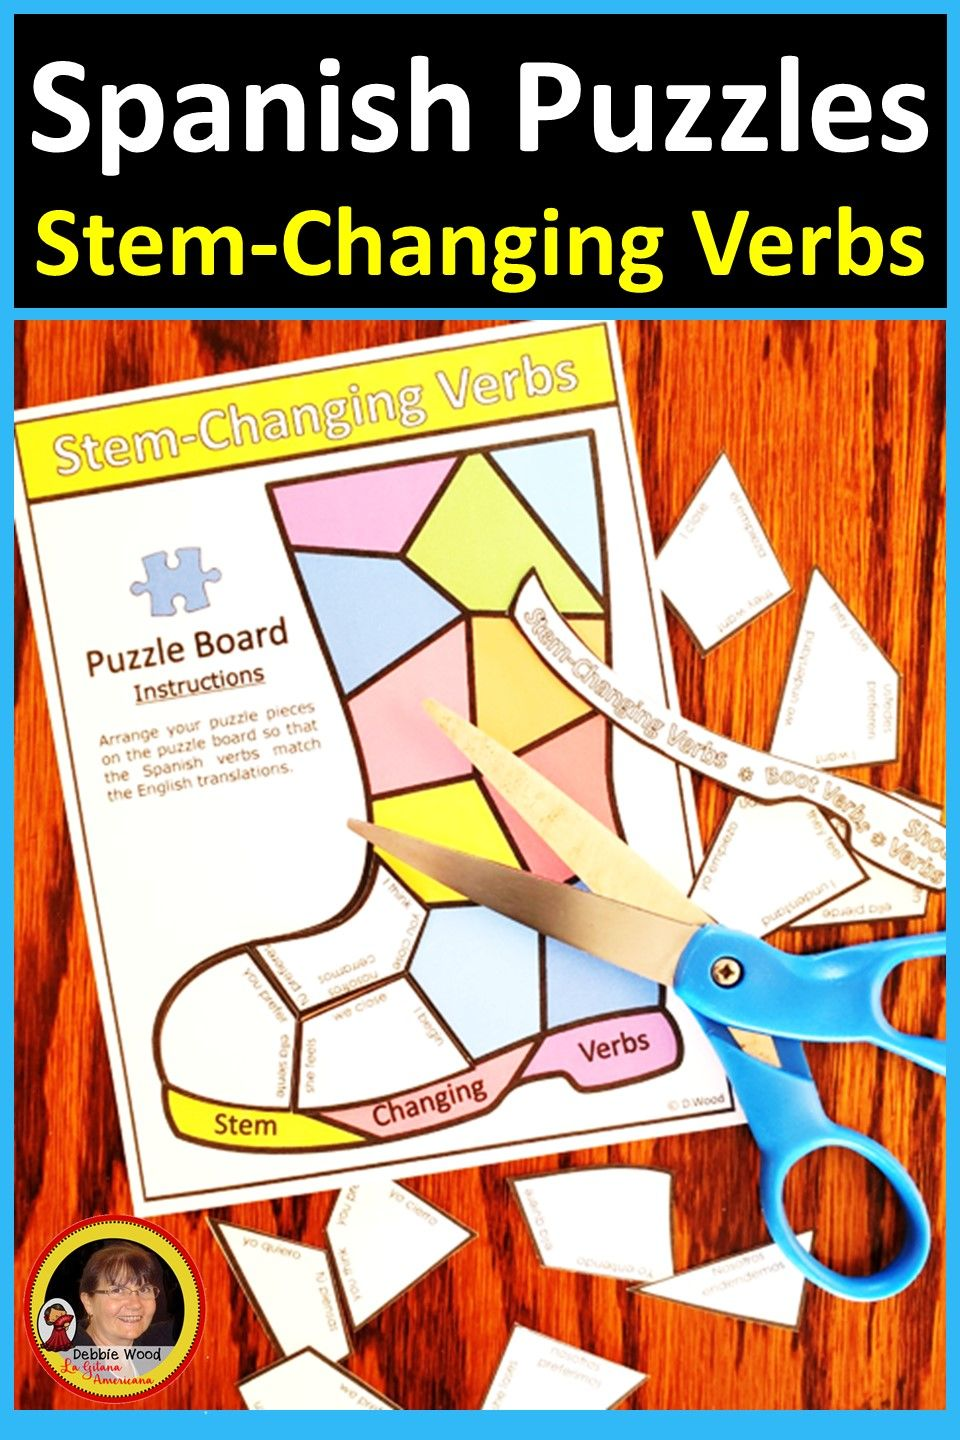 Spanish Stem Changing Verb Puzzles Verbs Activities Verbs Lessons Spanish [ 1440 x 960 Pixel ]